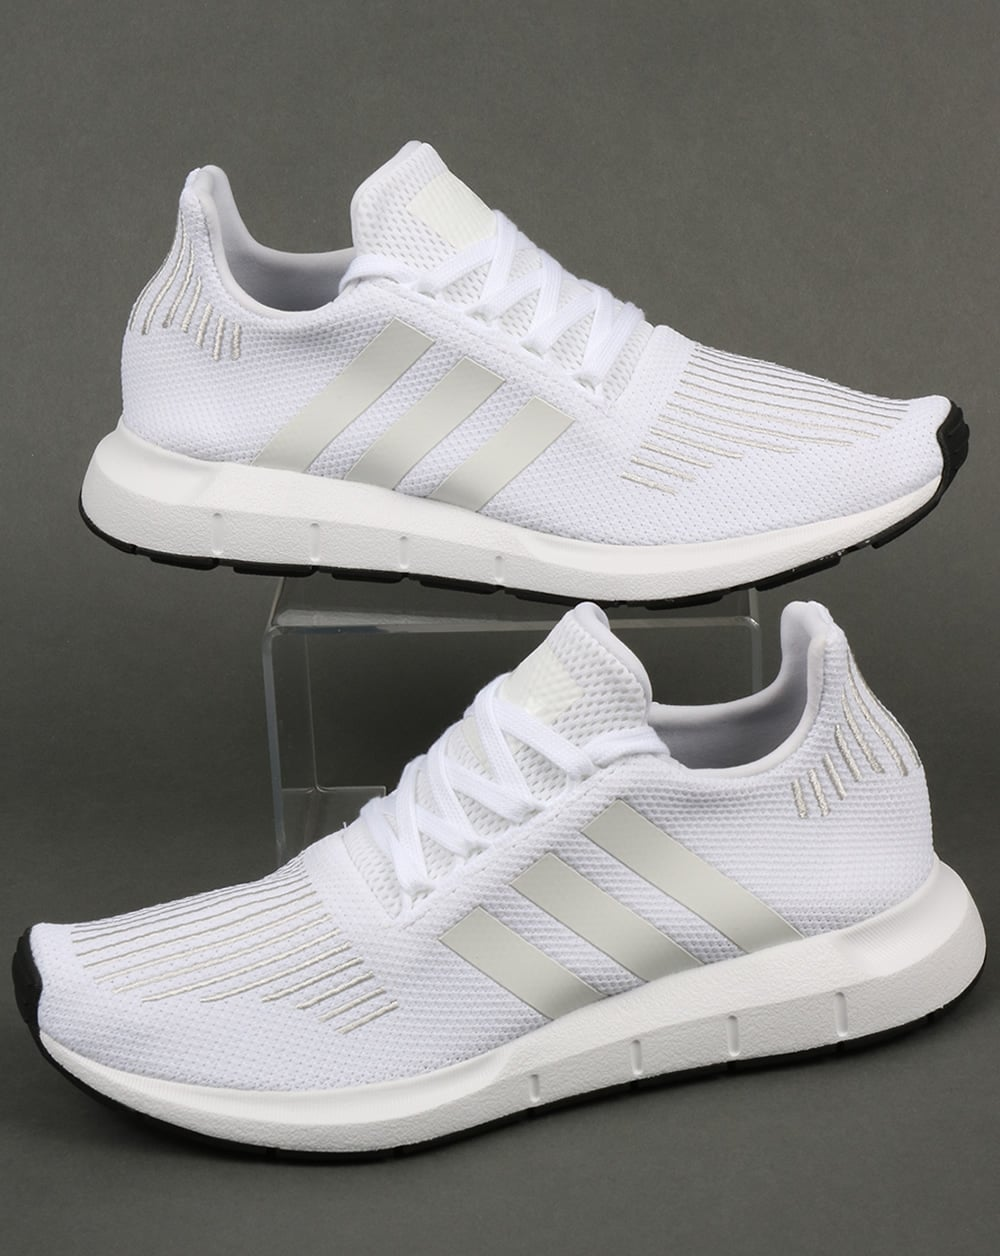 fdcce9edb0e21a adidas Trainers Adidas Swift Run Trainers White